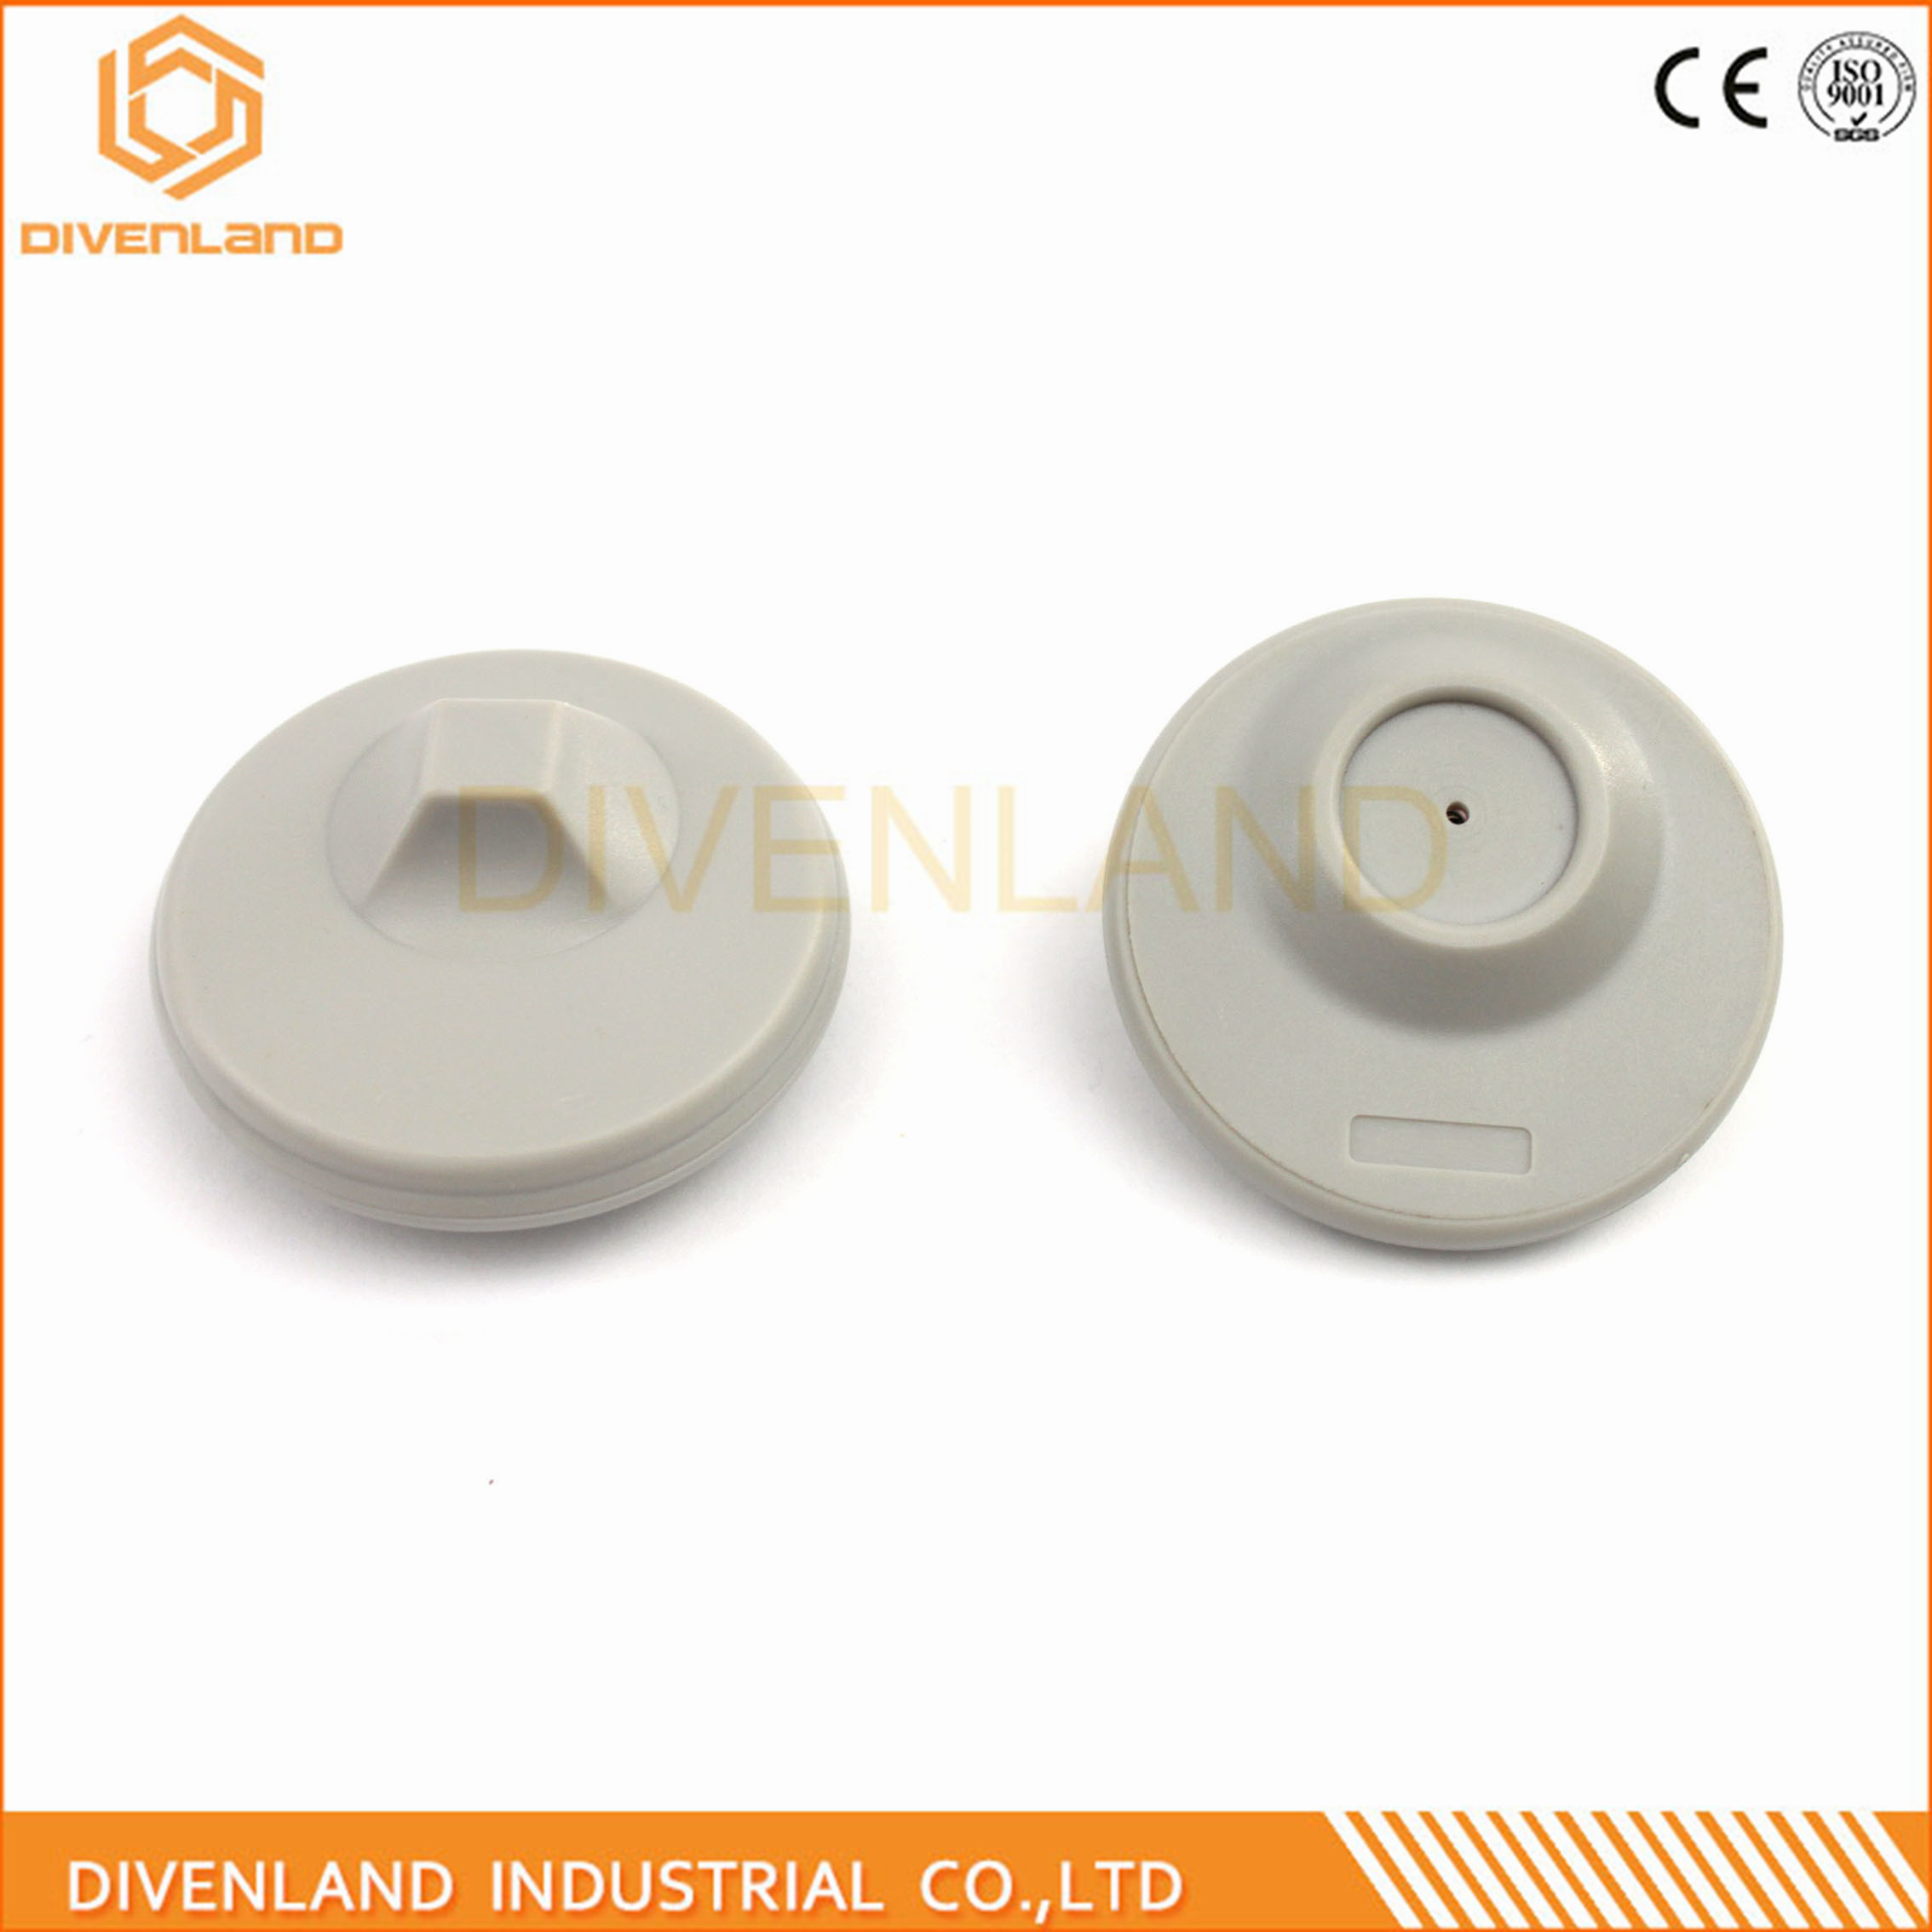 EAS anti-theft hard round security tag Featured Image